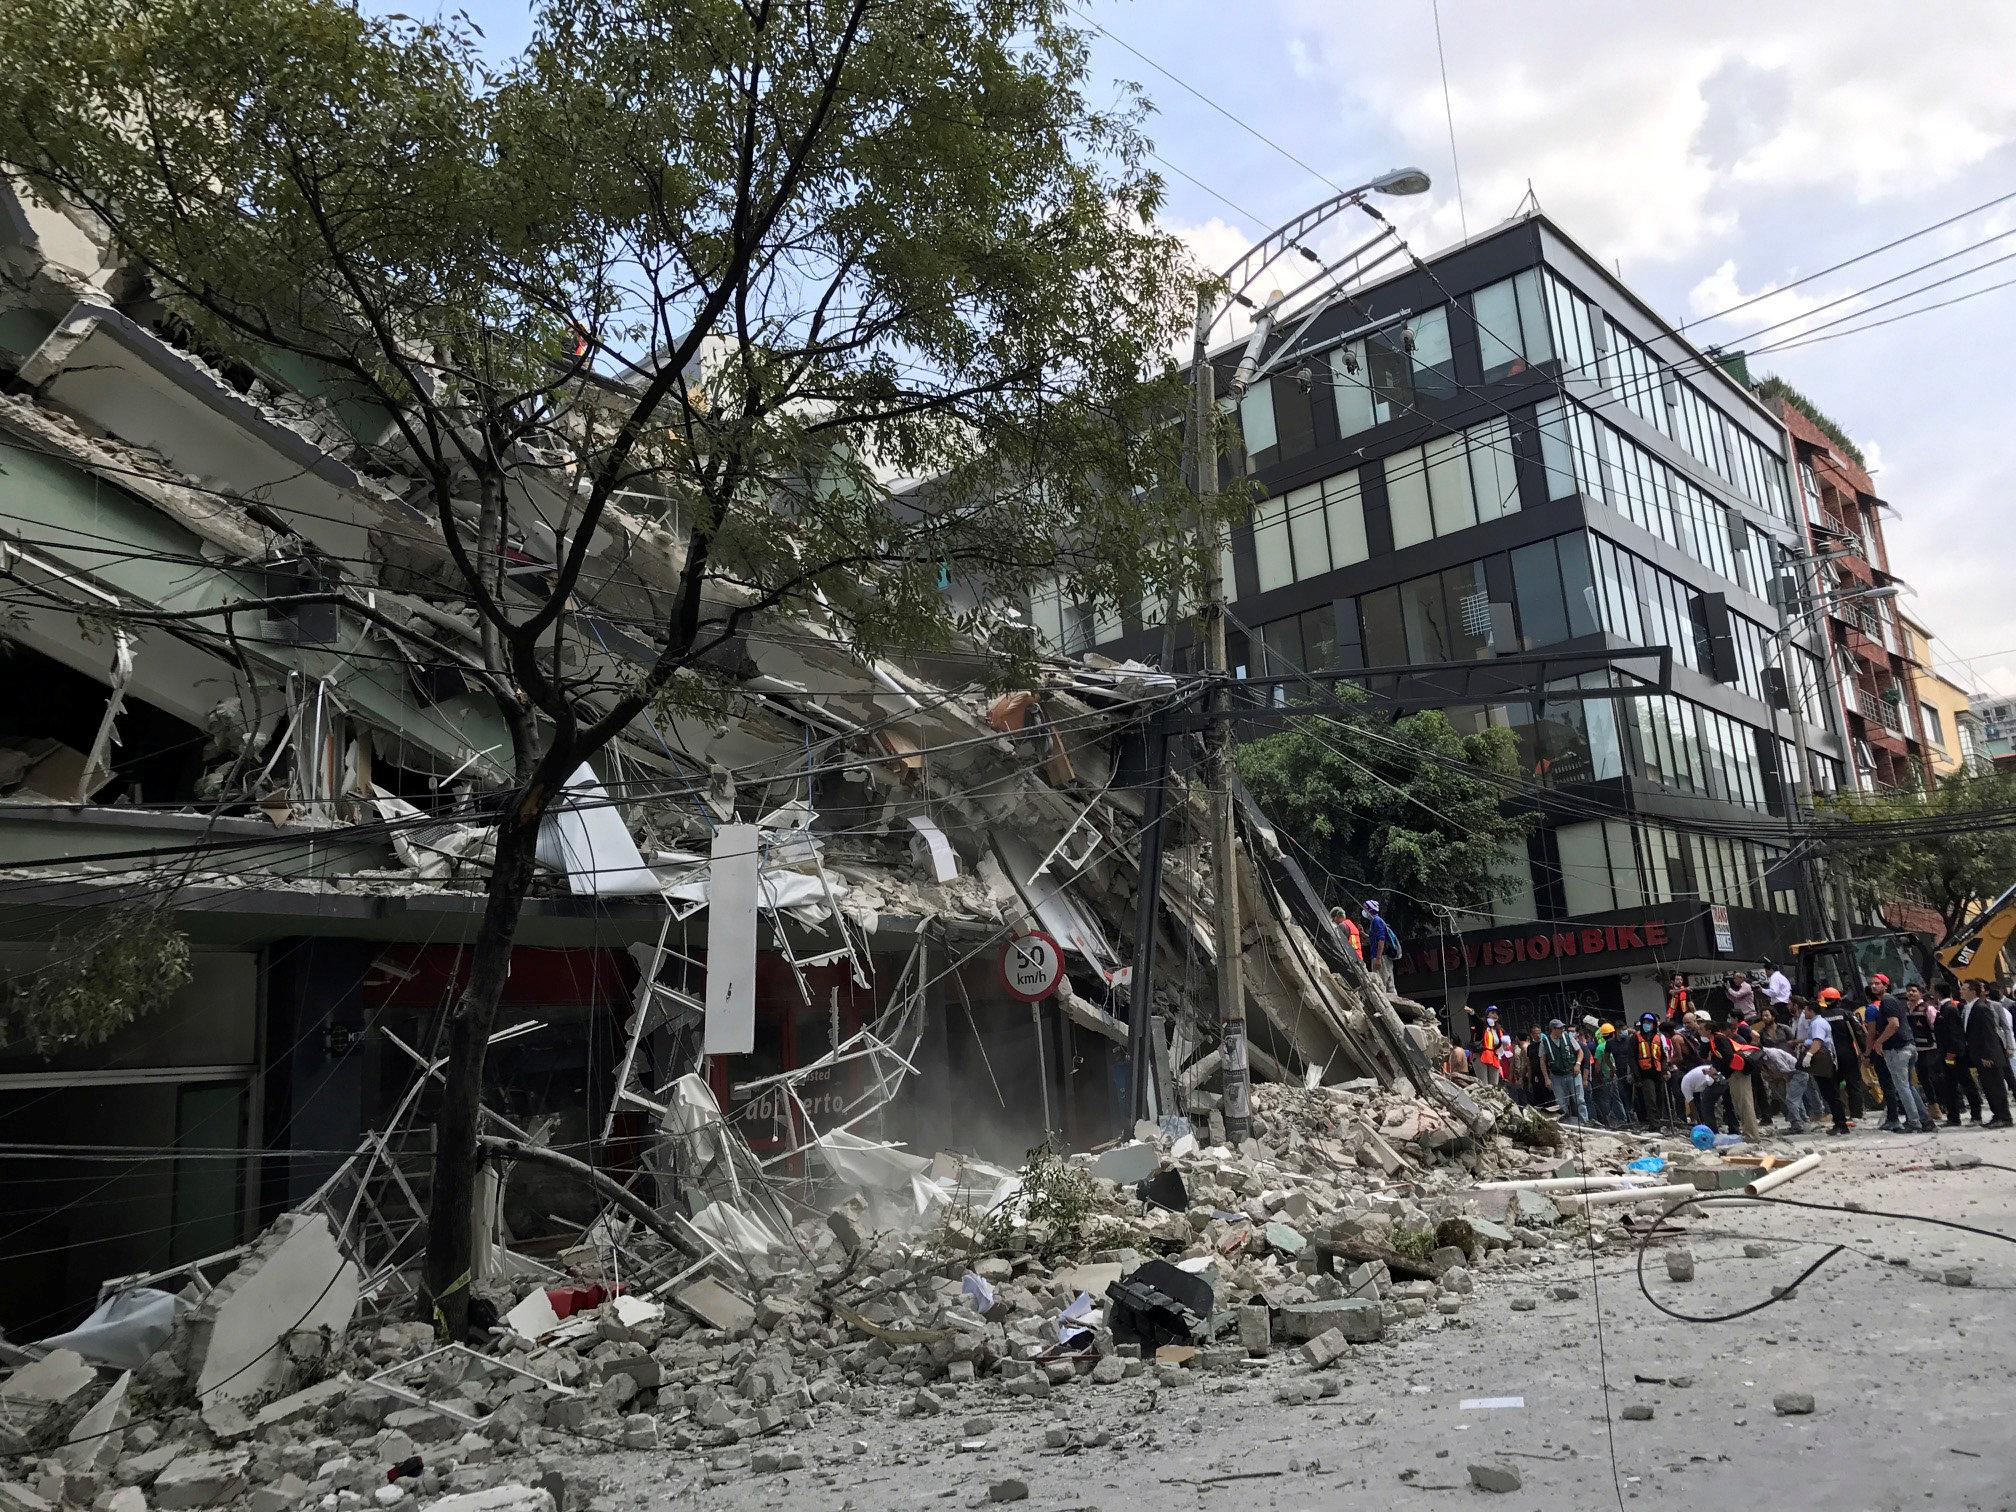 UPDATE: Over 100 dead in Mexico City earthquake